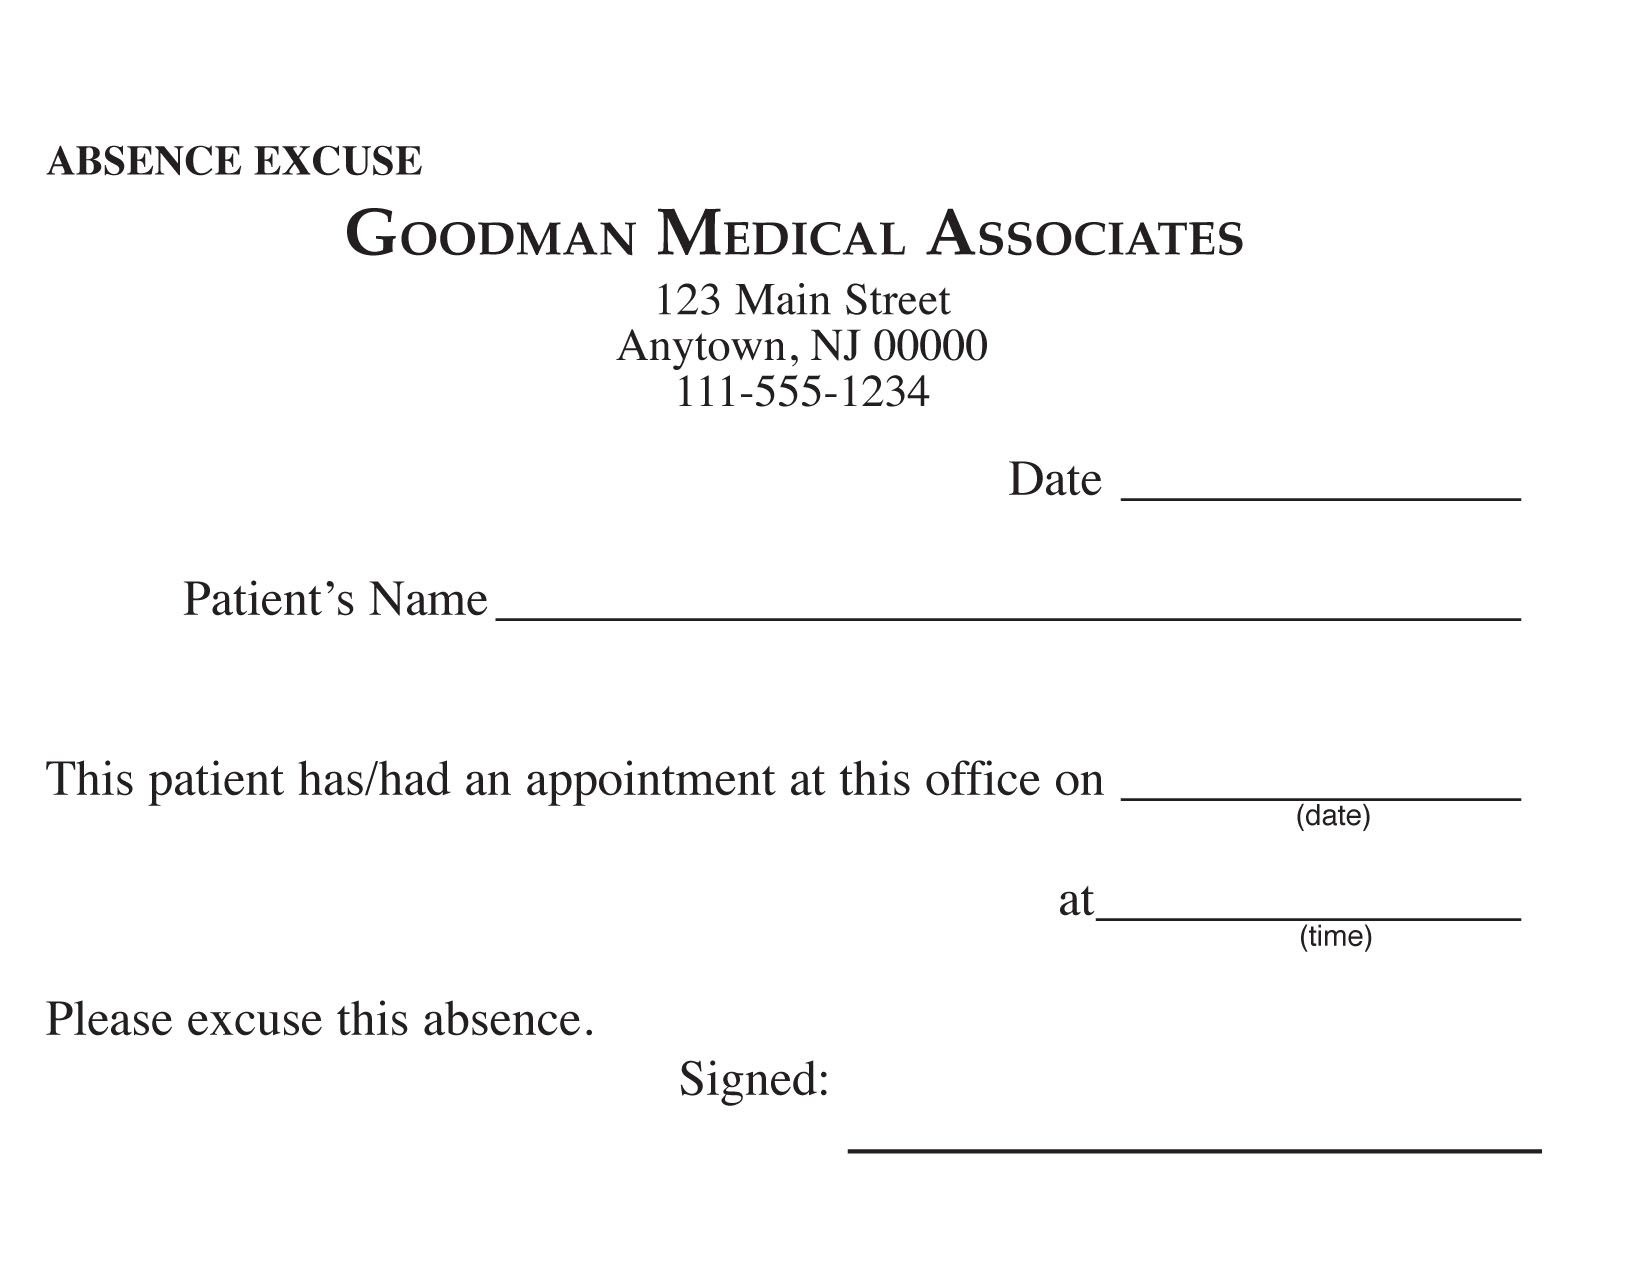 Blank Printable Doctor Excuse Form | Keskes Printing - Mds - Free Printable Doctor Excuse Slips